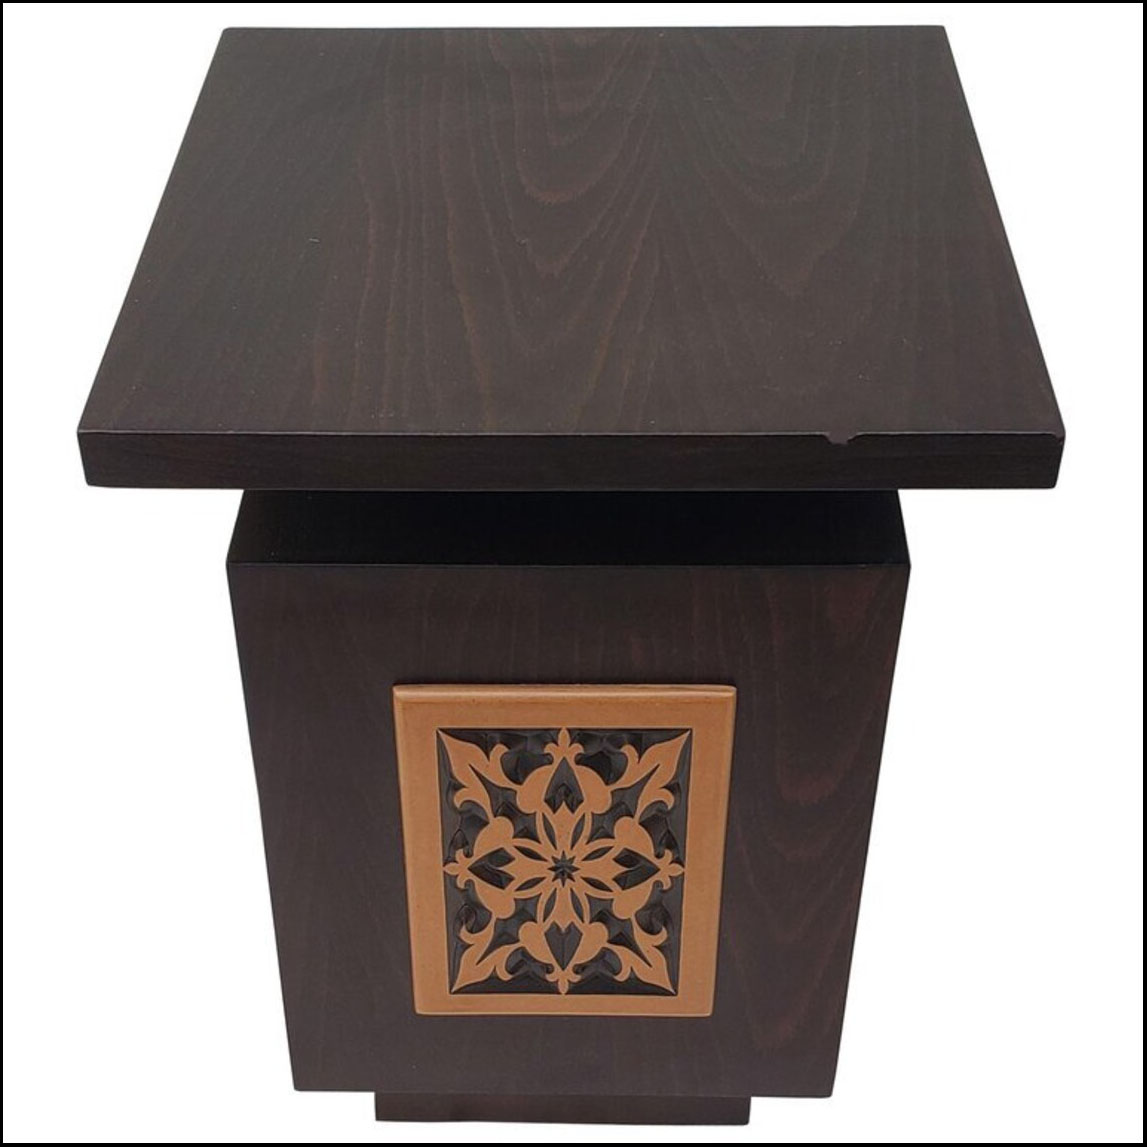 Moroccan Contemporary Wooden Side Table, Square